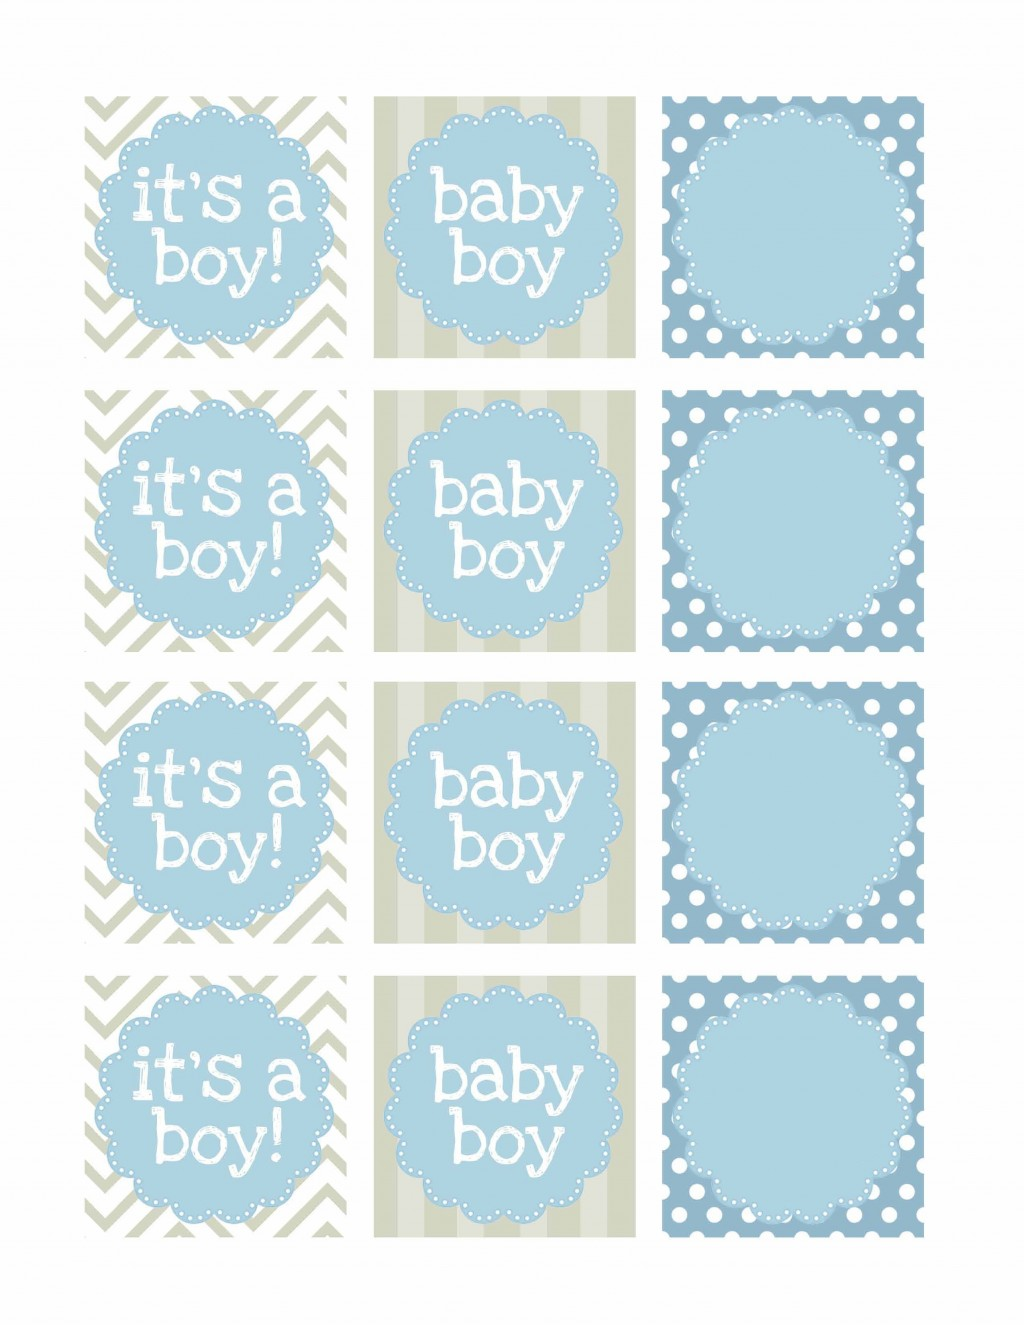 000 Unique Free Baby Shower Printable Boy Image  Oh Invitation ForLarge